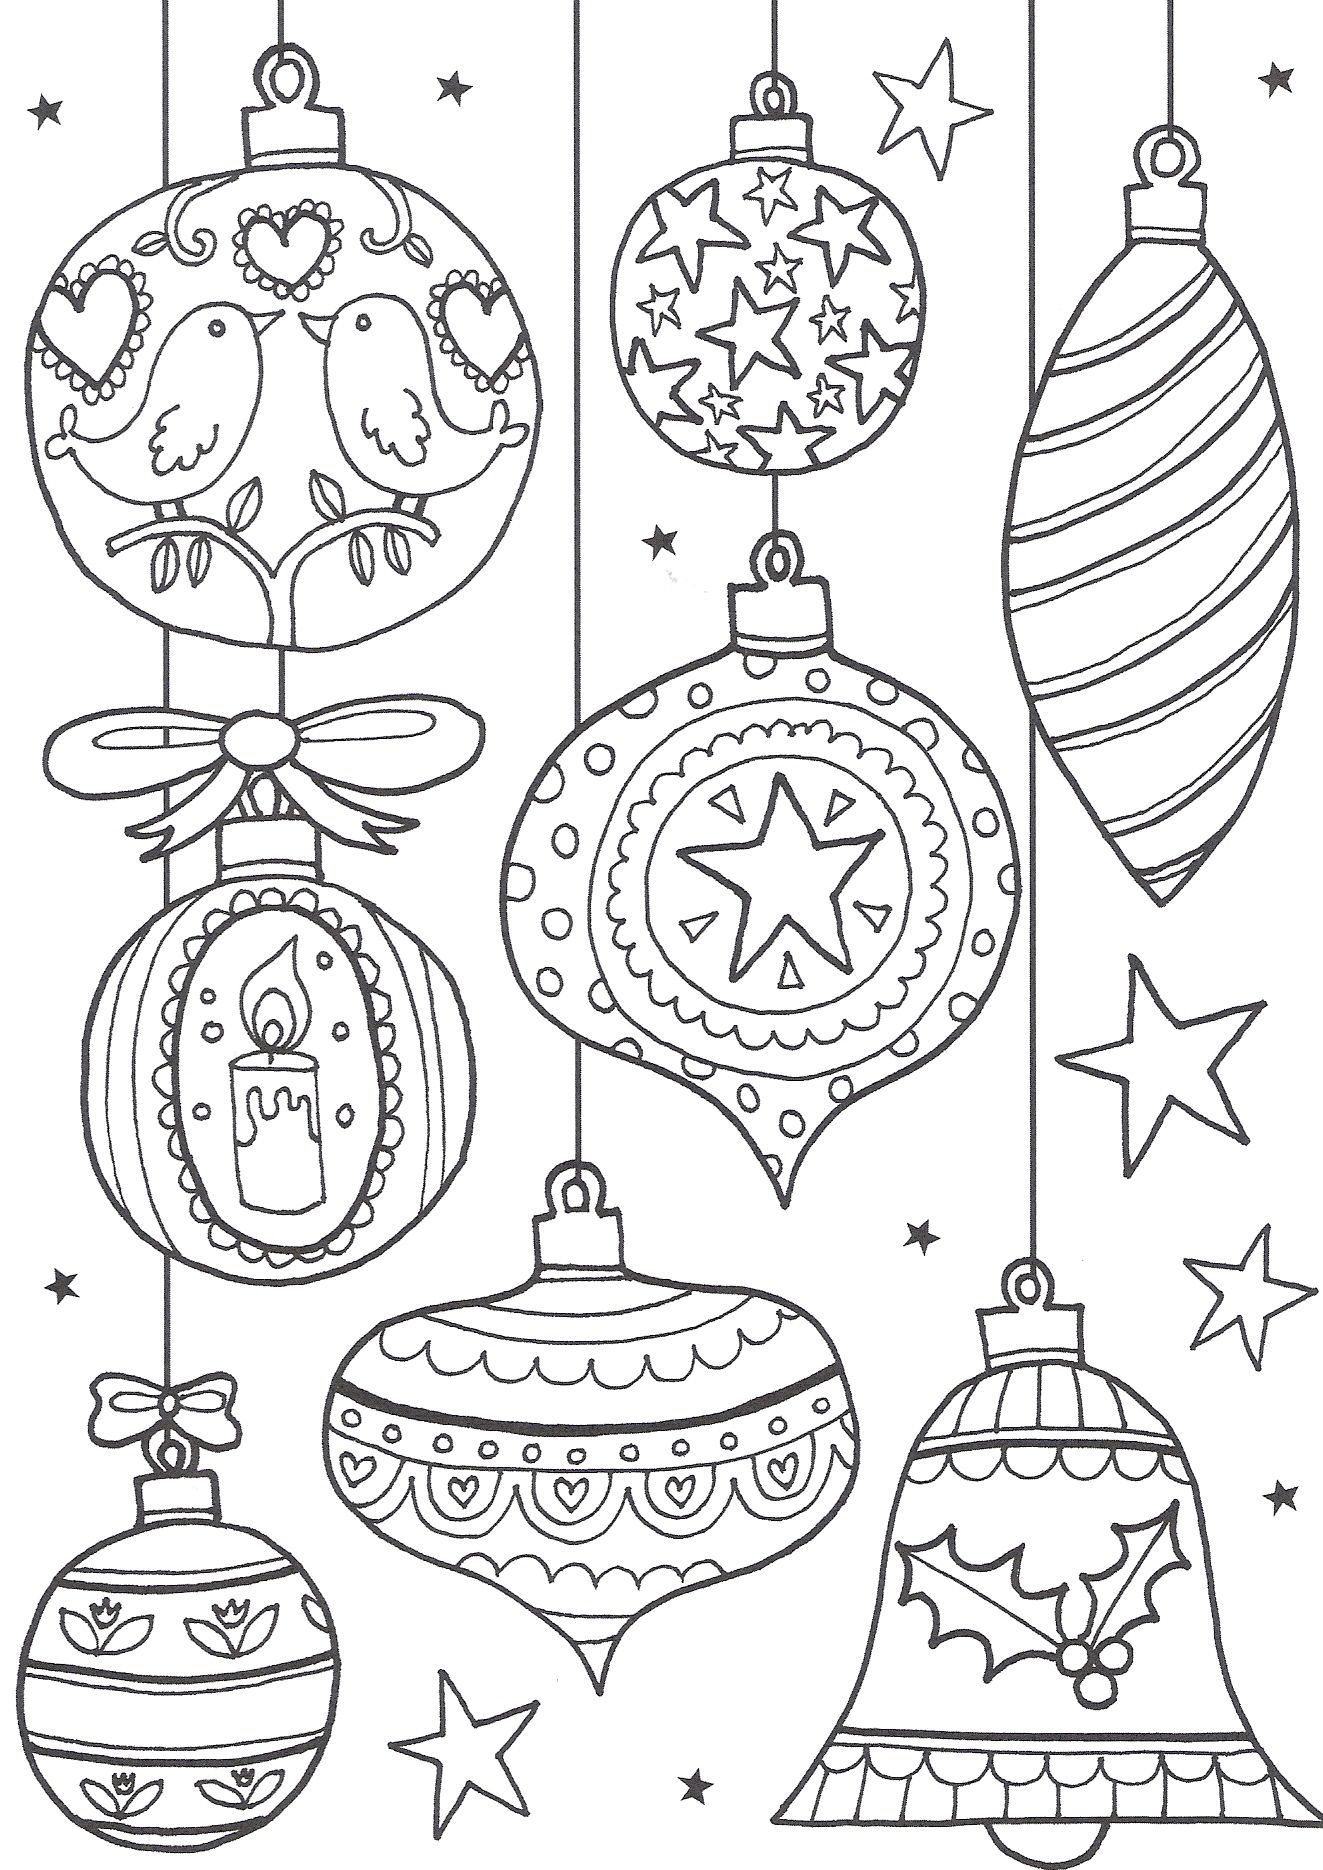 Christmas Coloring Worksheets Kindergarten With Free Colouring Pages For Adults The Ultimate Roundup